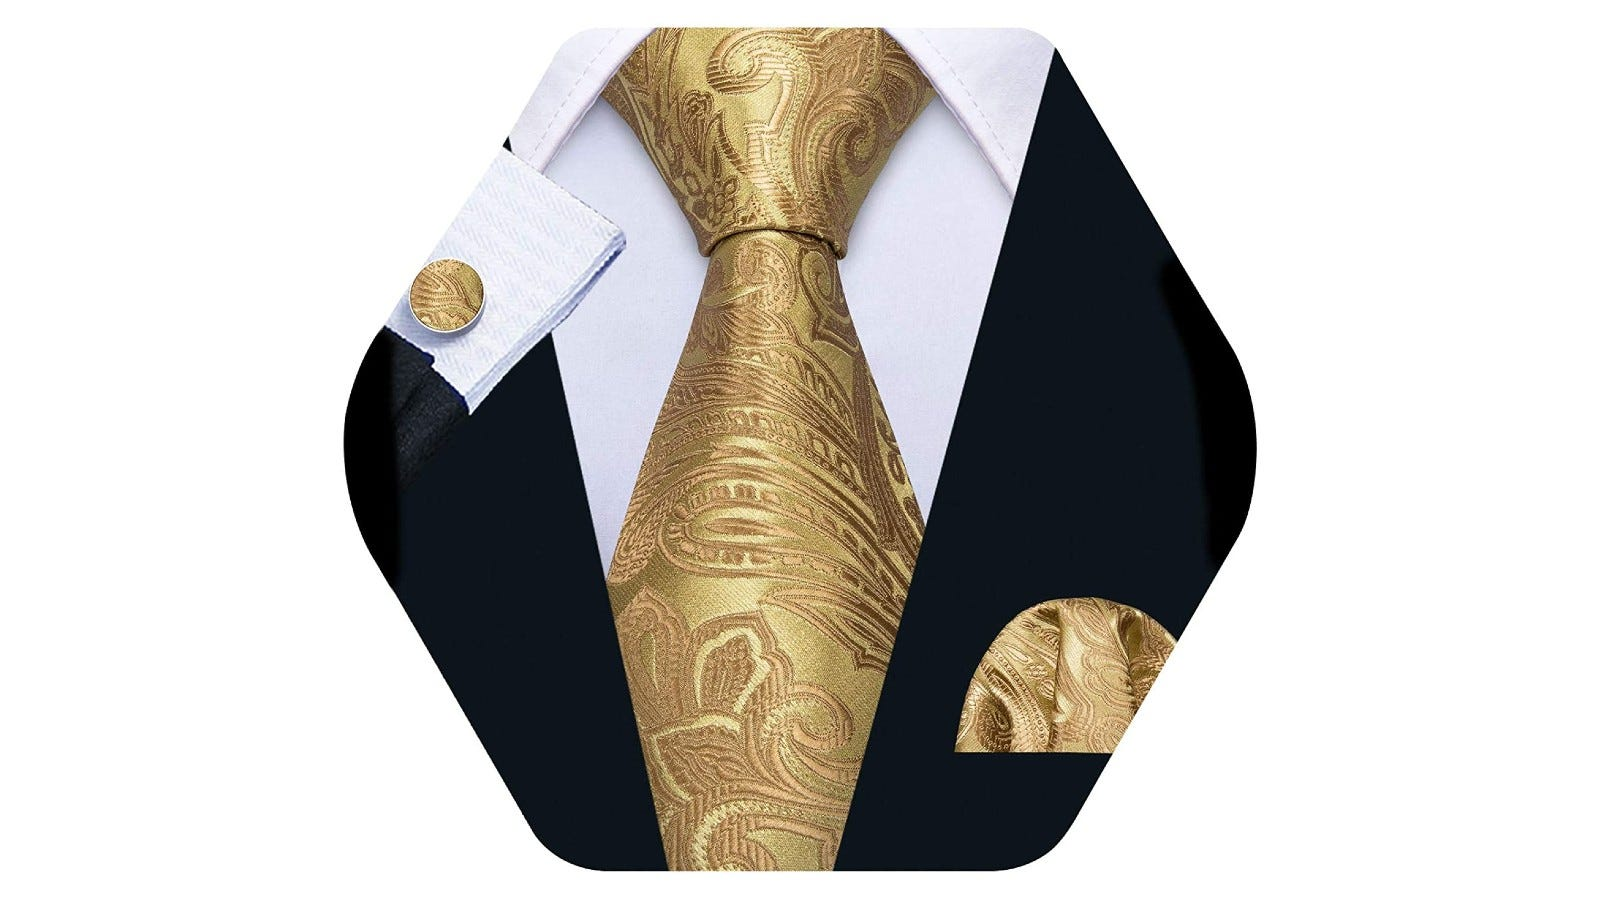 A gold paisley men's necktie with a white collared shirt, suit coat, and matching pocket square